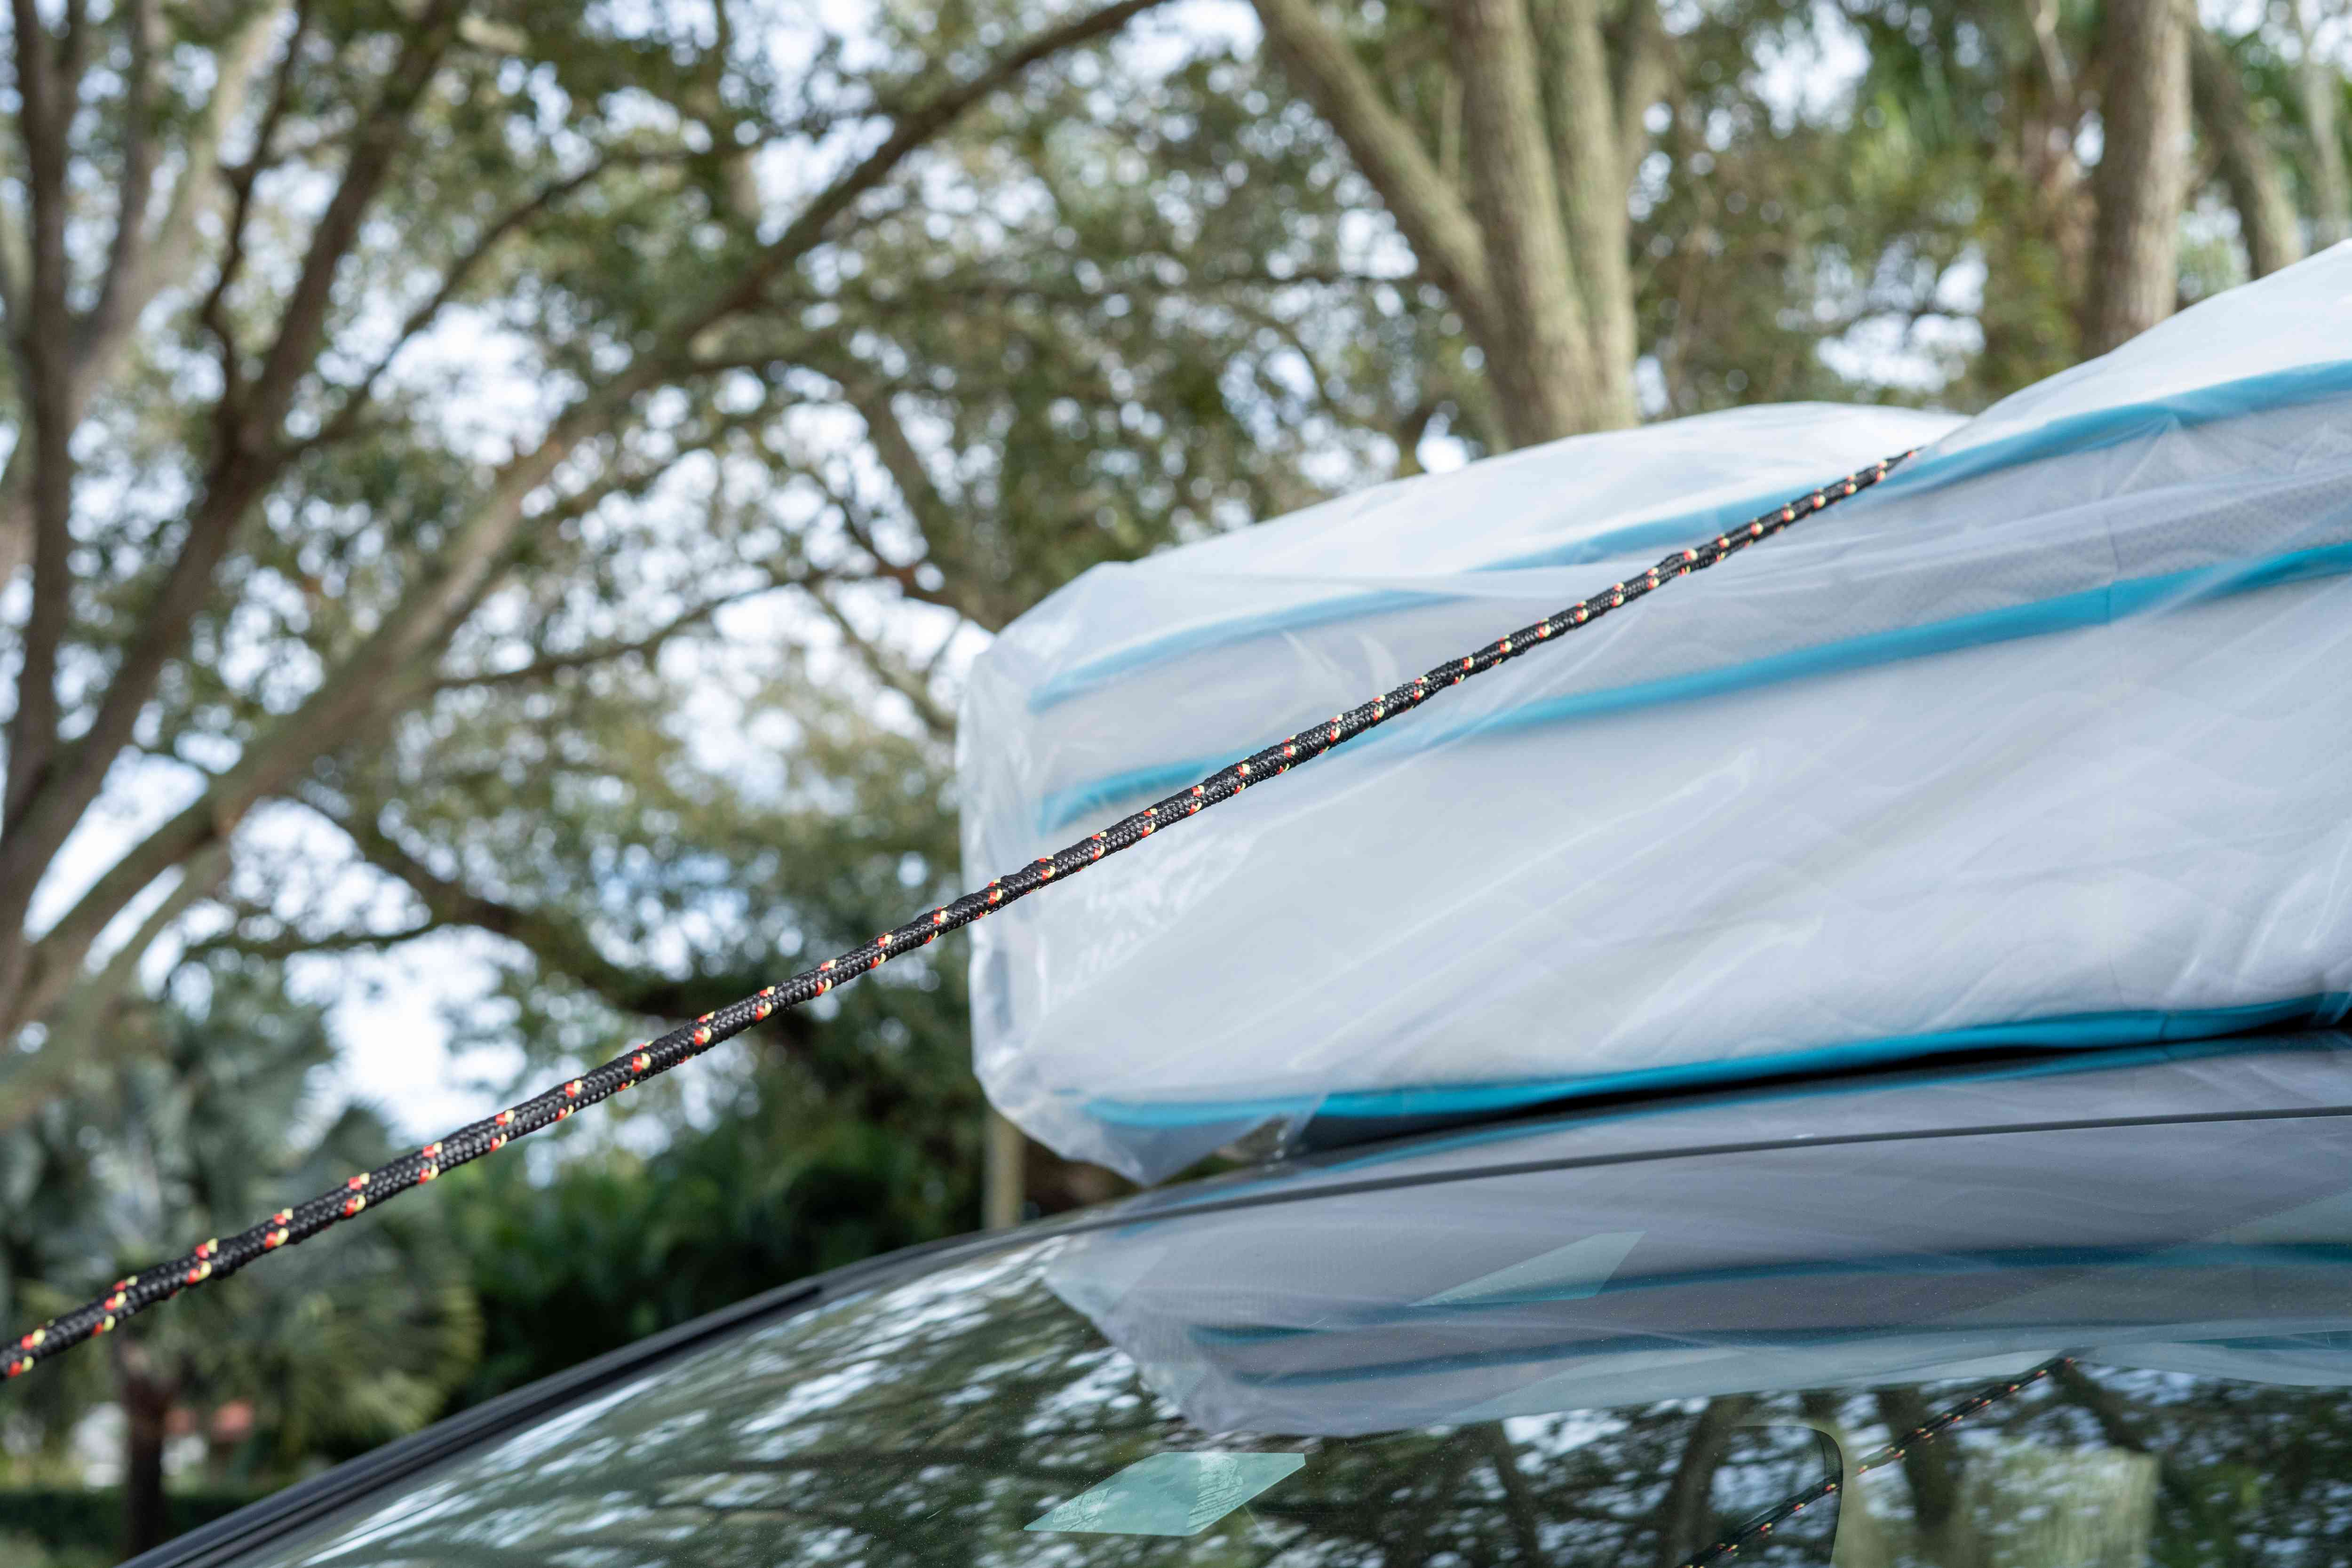 securing the mattress to the top of the car